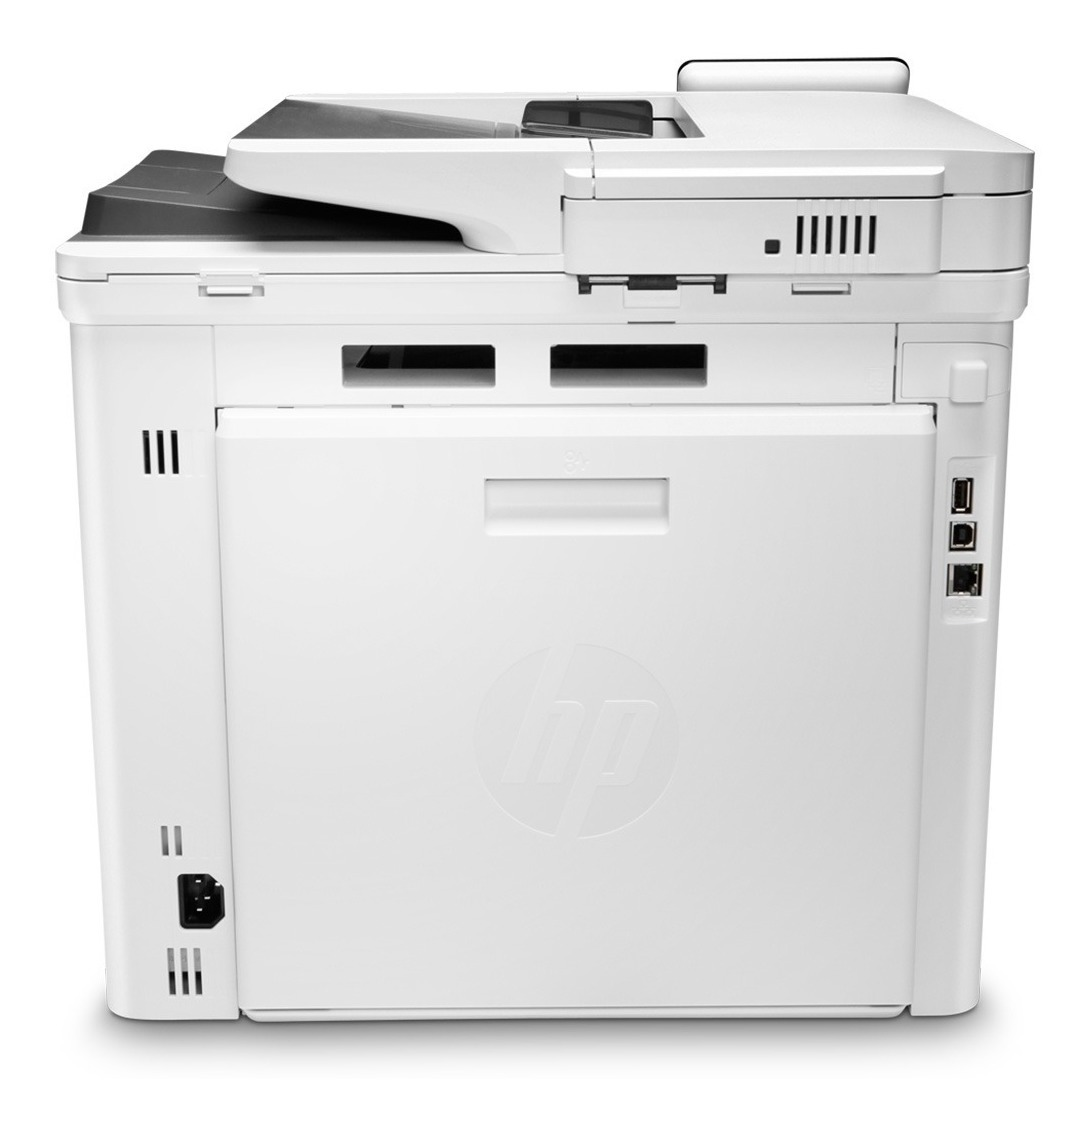 Impresora Laser Color Multifuncion Hp Pro M479fdw Duplex Fax